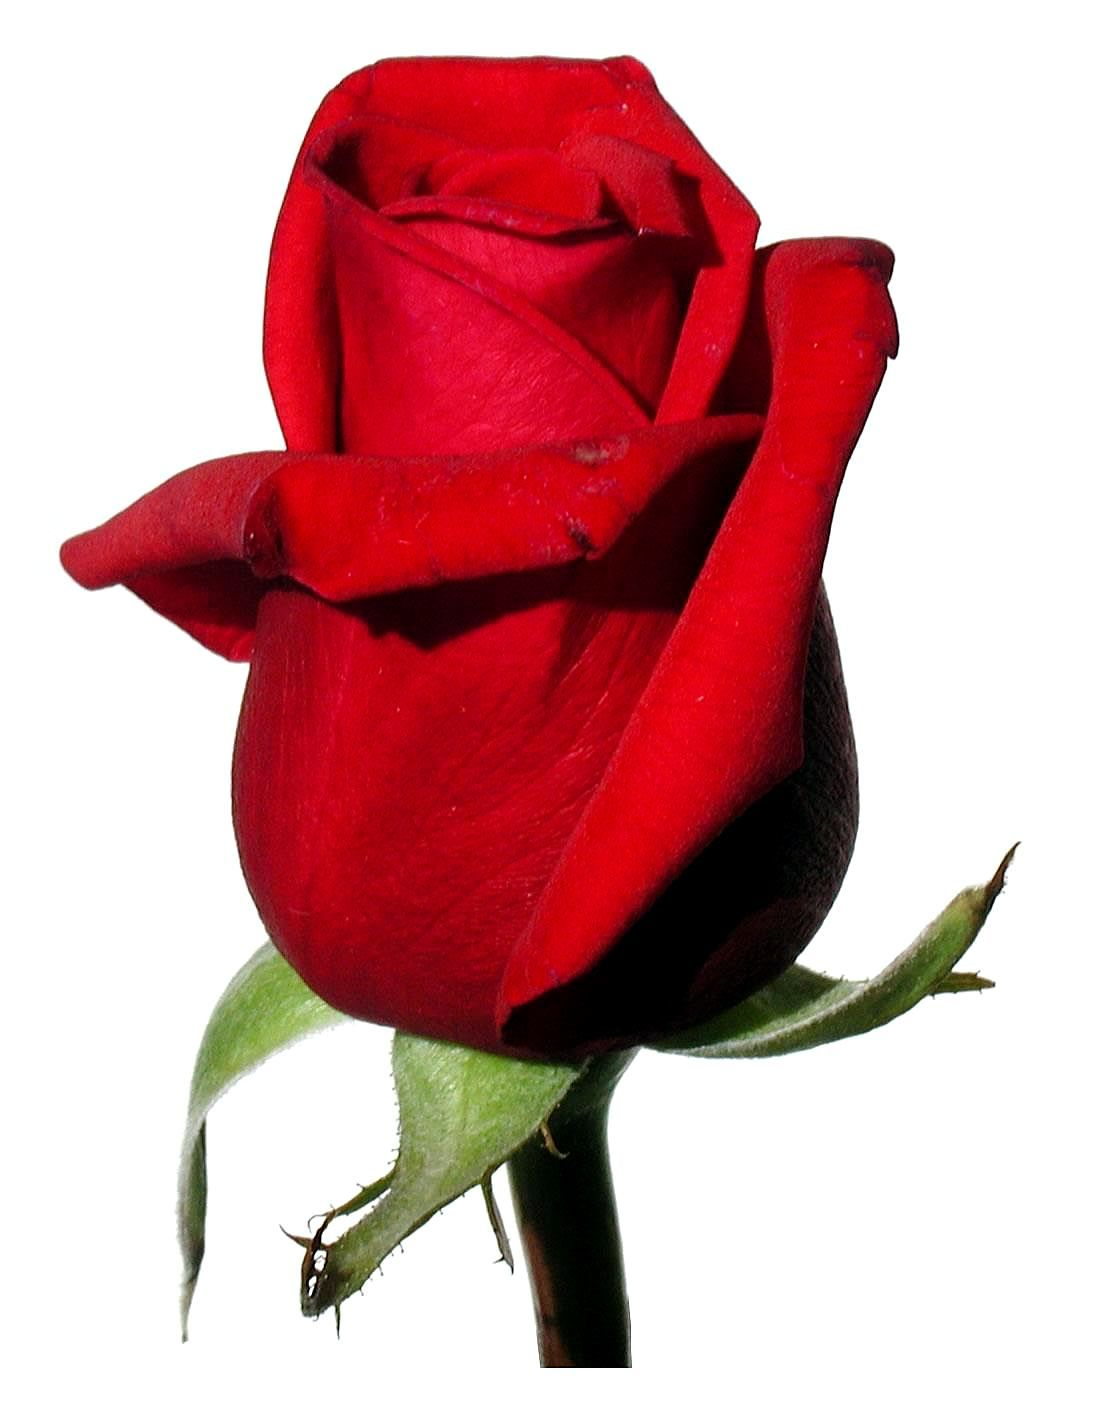 Free picture rose red white background rose red white background mightylinksfo